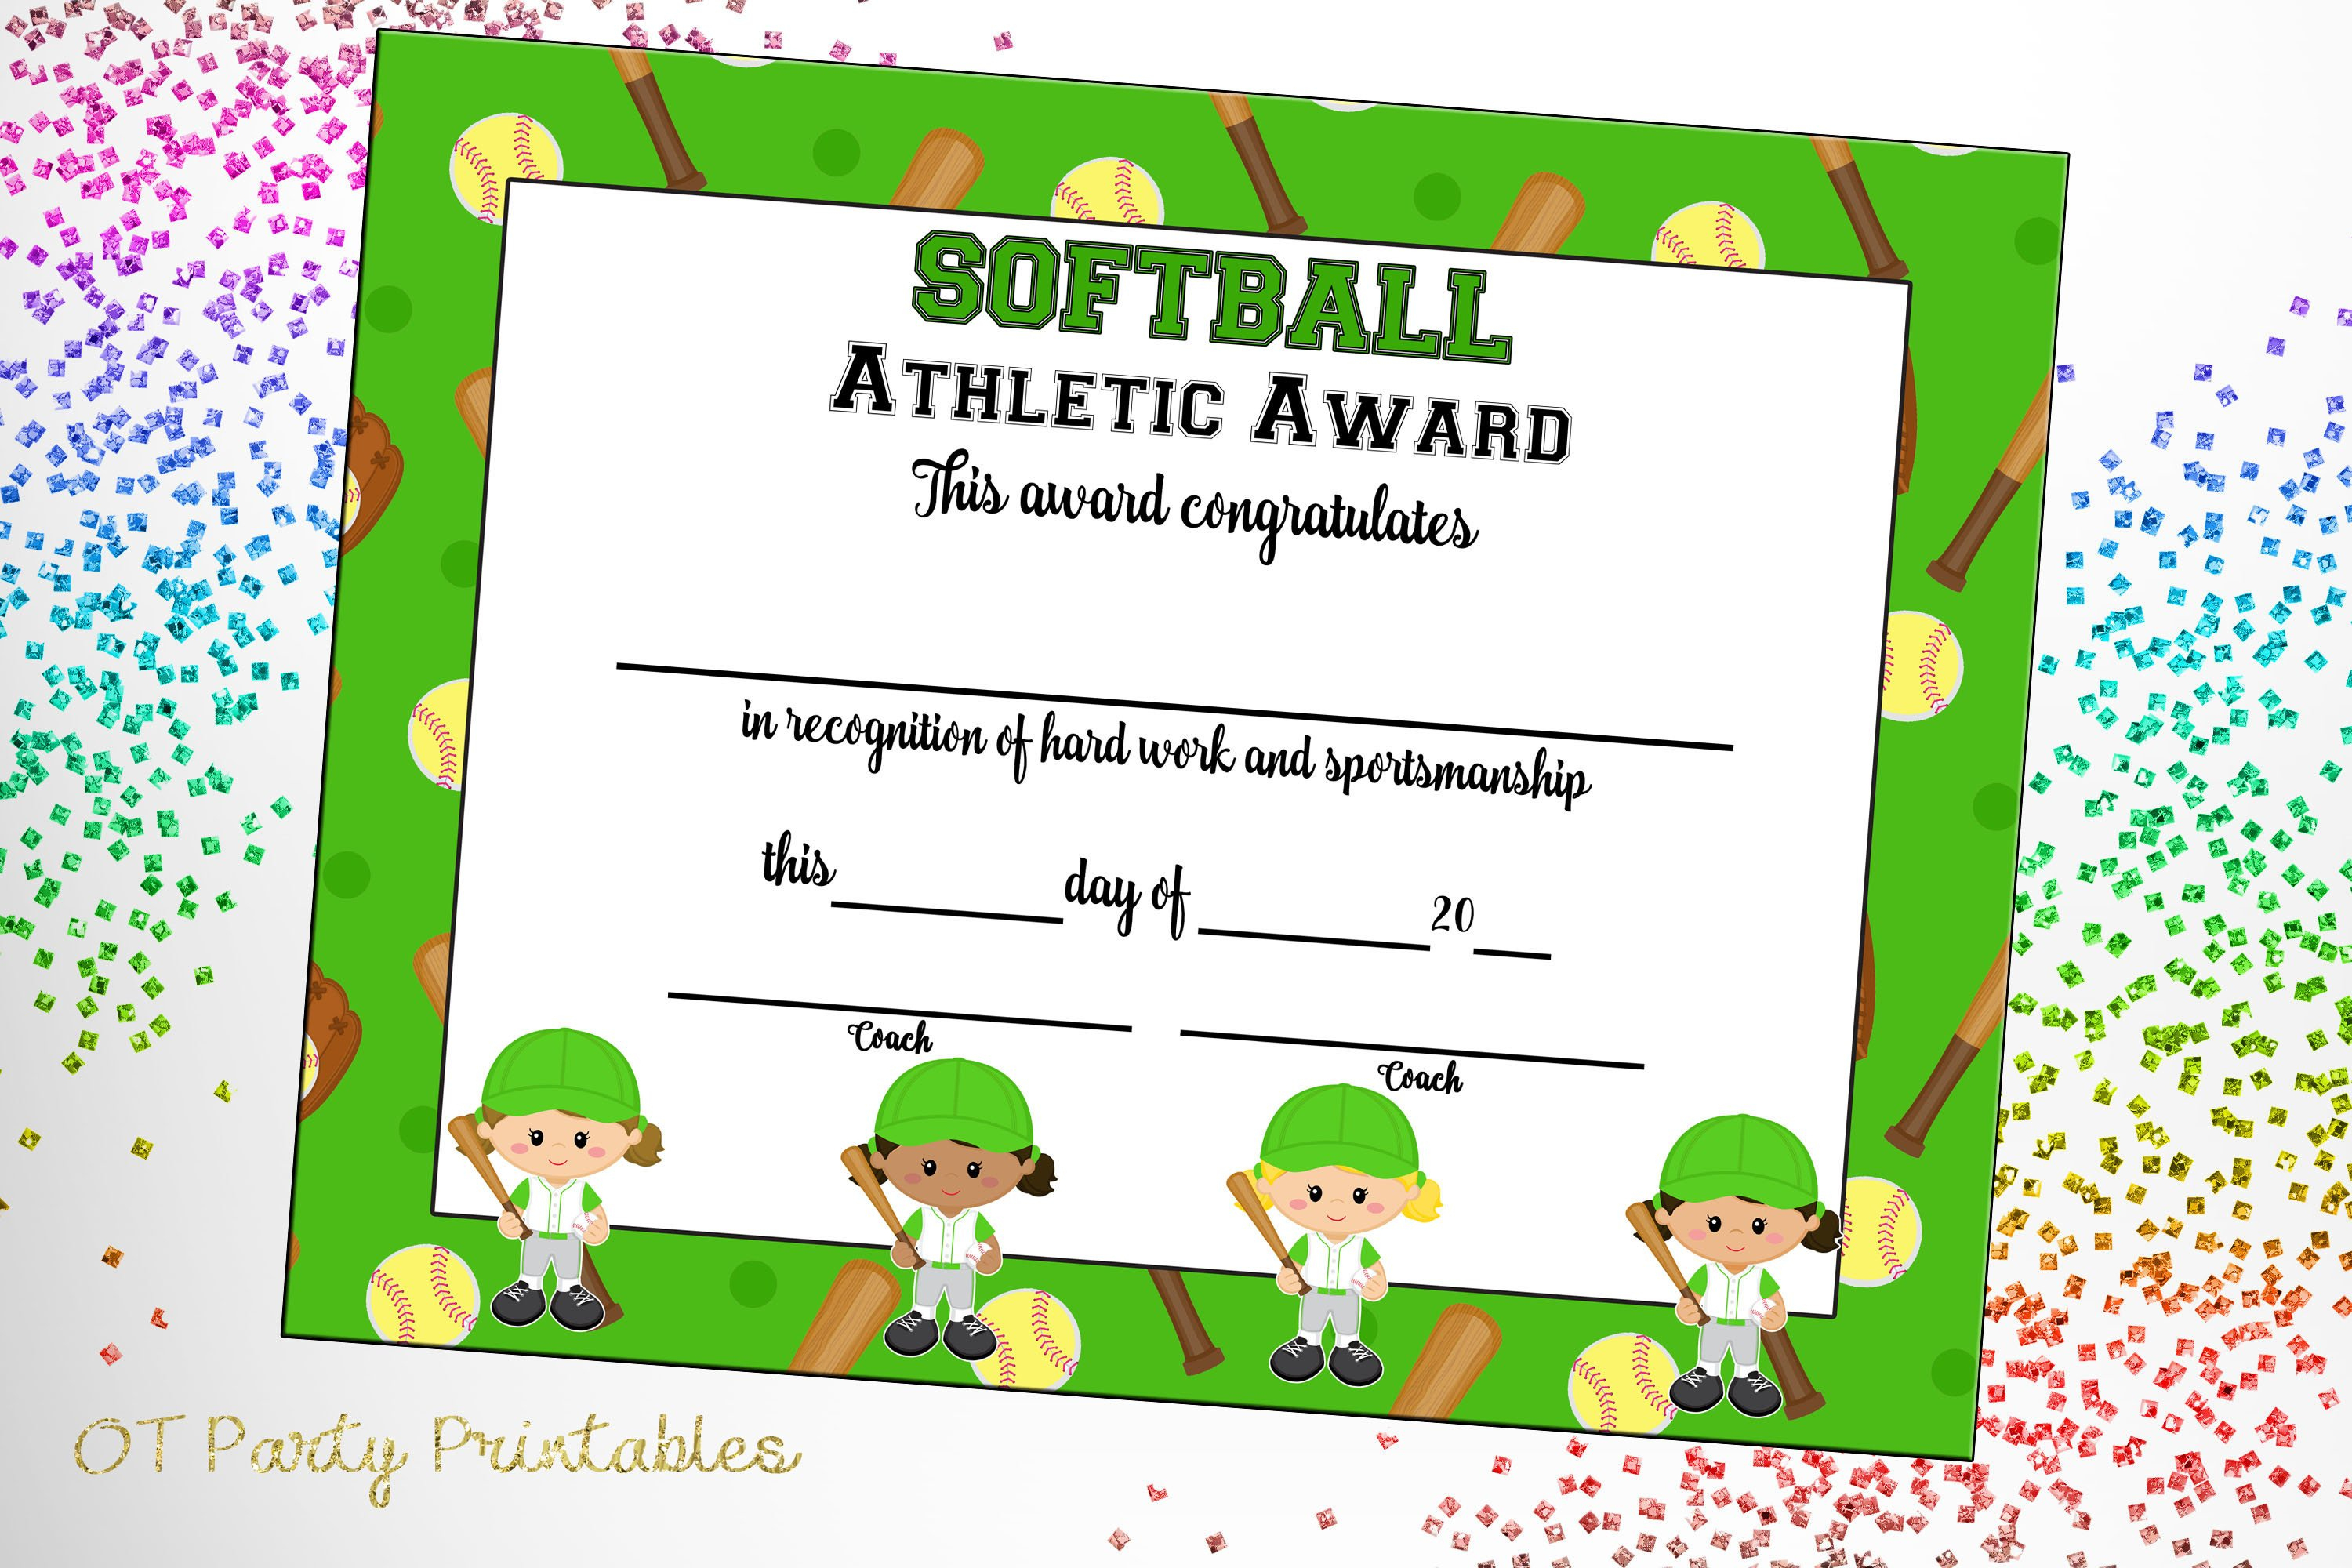 Softball Certificate Of Achievement Softball Award Print | Etsy - Free Printable Softball Award Certificates